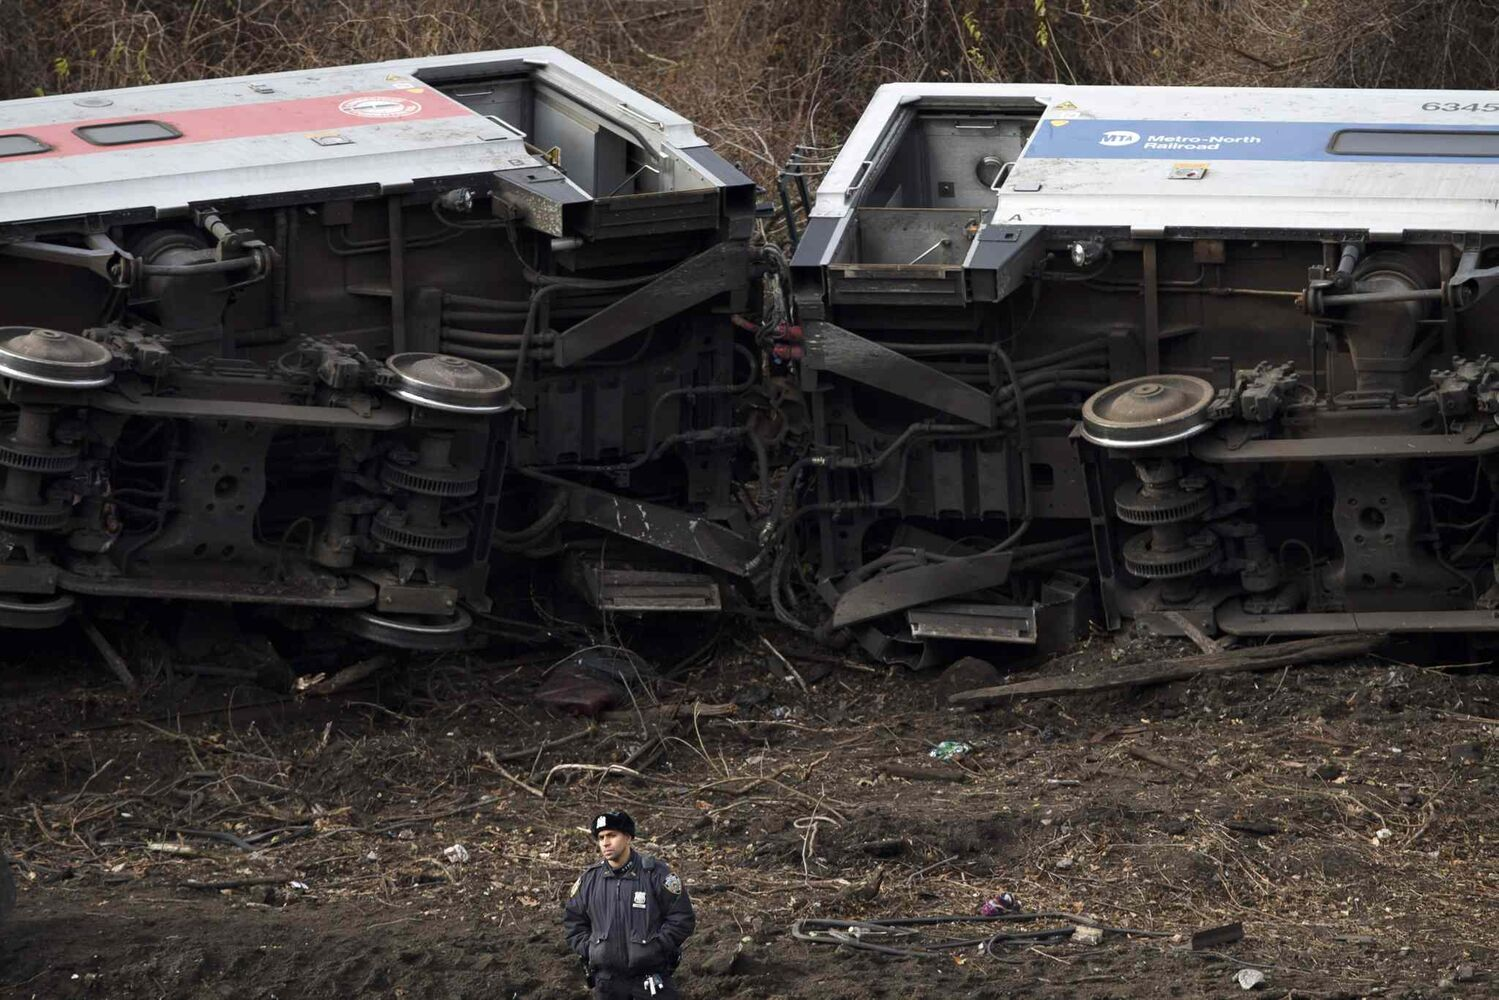 A police officer stands guard at the scene of a Metro-North passenger train derailment in the Bronx borough of New York Sunday. (John Minchillo / The Associated Press)